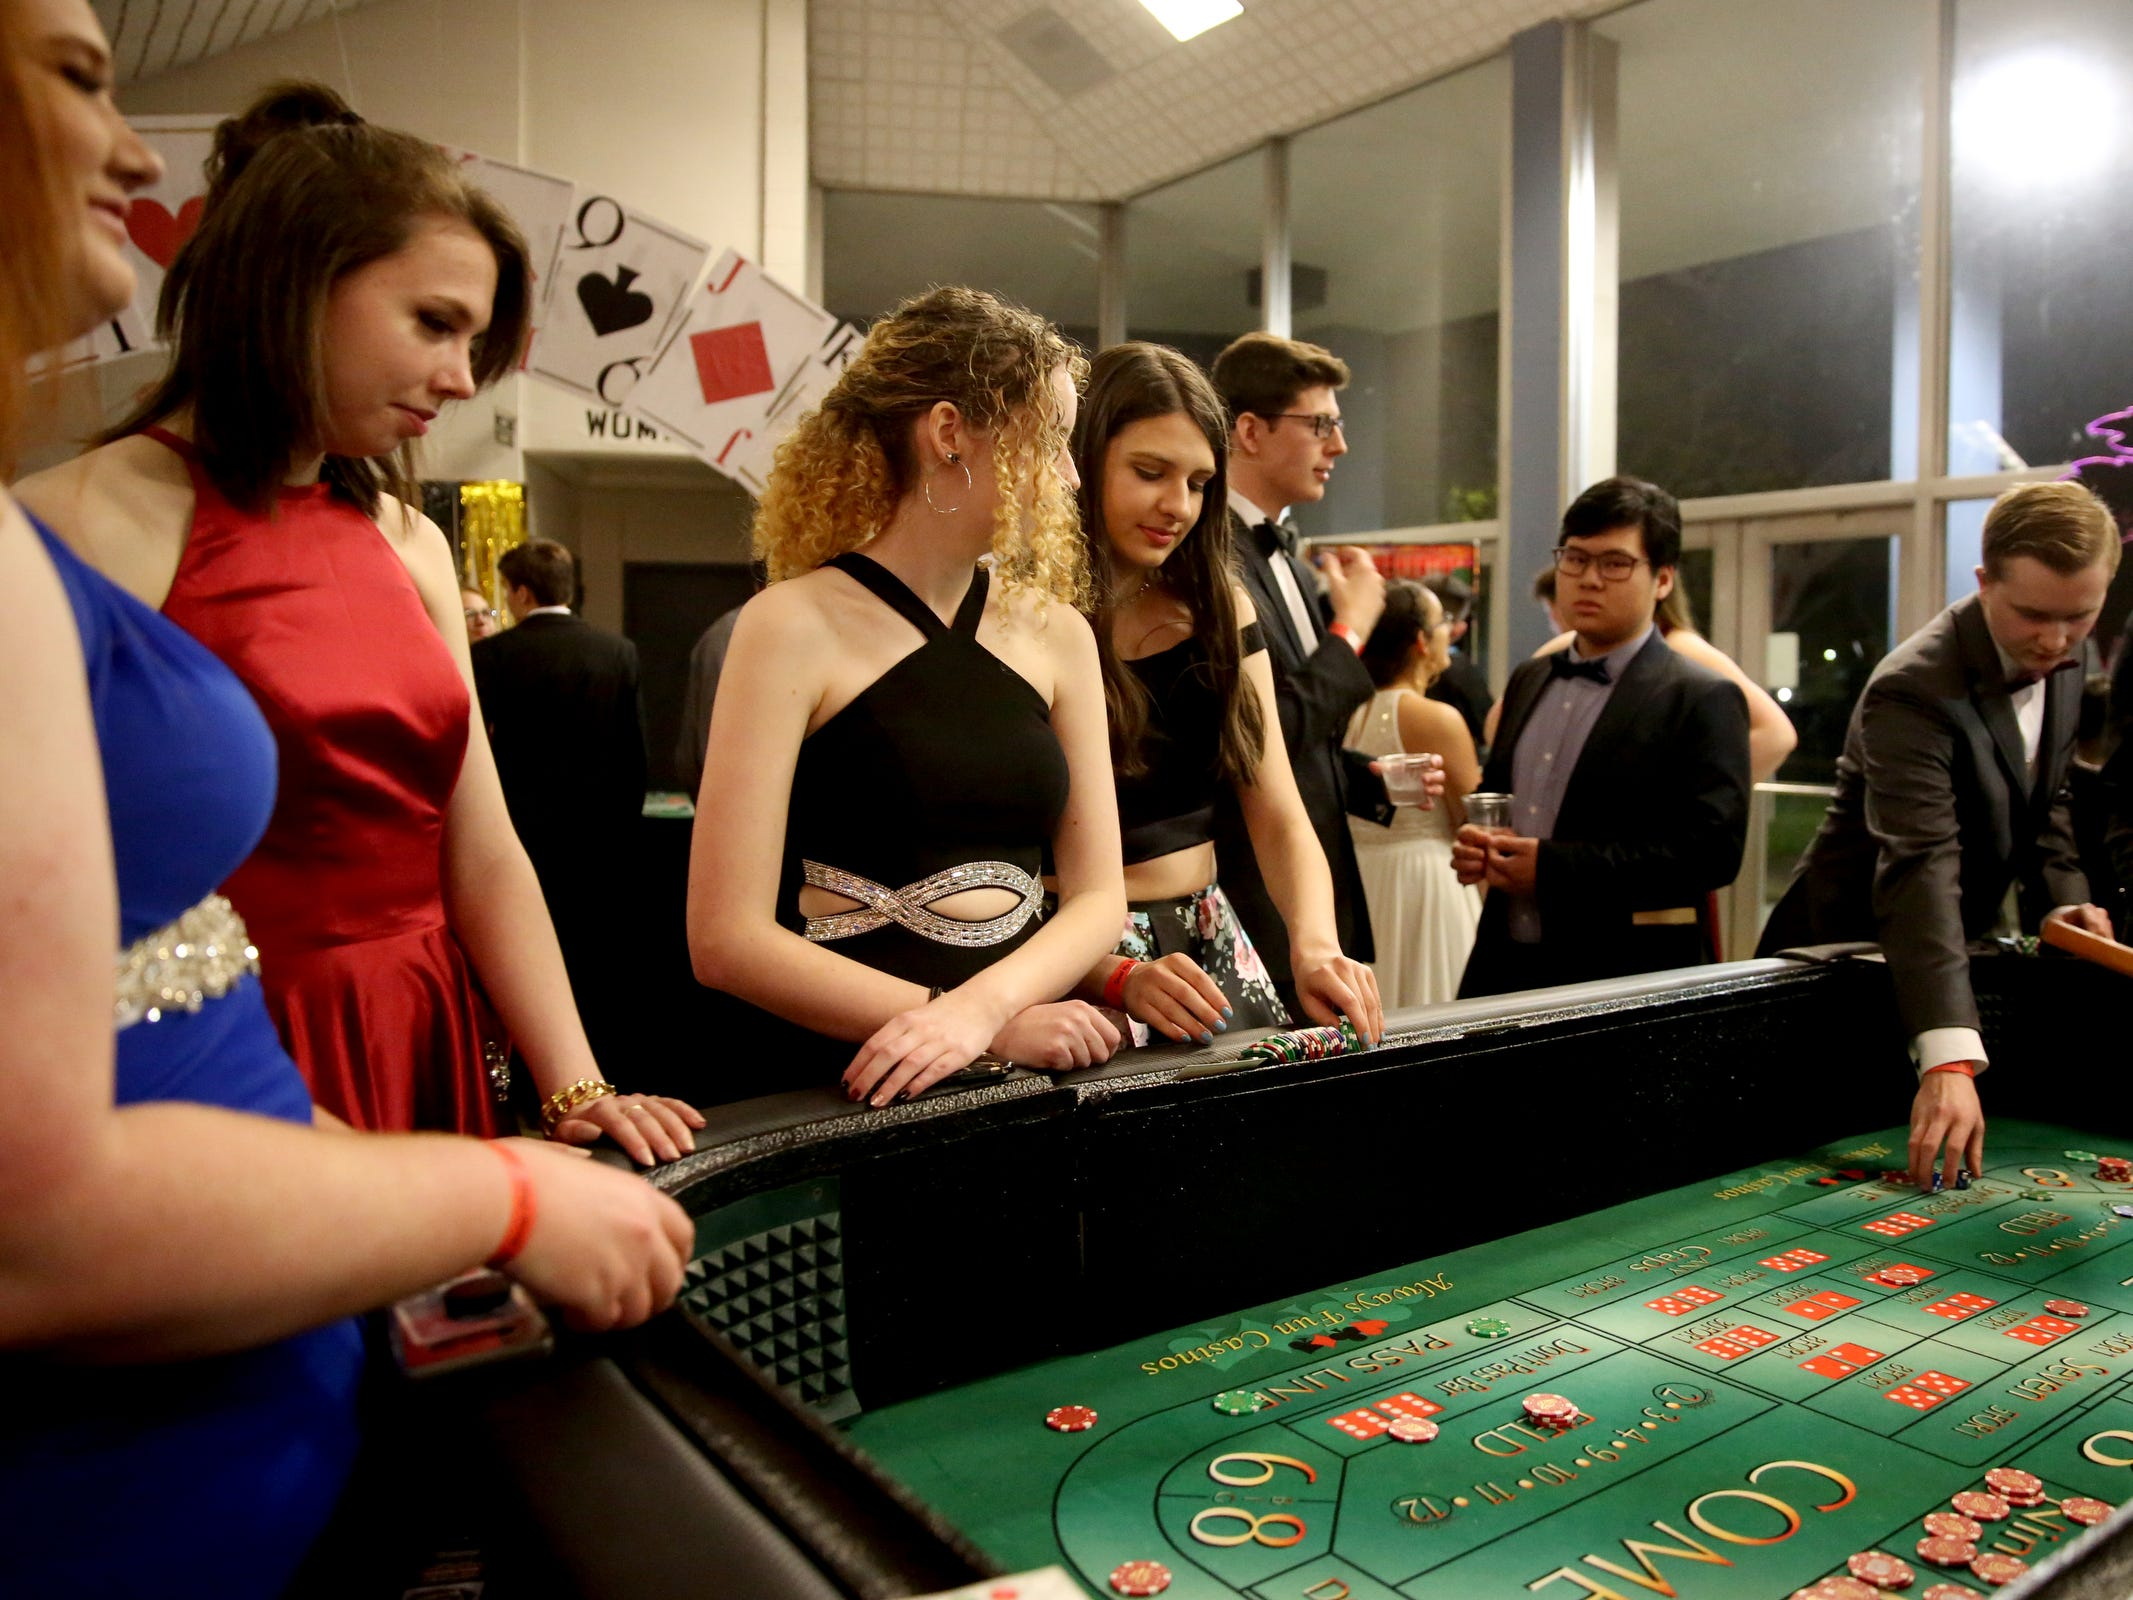 Students play Vegas-style games during the West Salem High School prom at Salem Armory Auditorium on April 13, 2019.